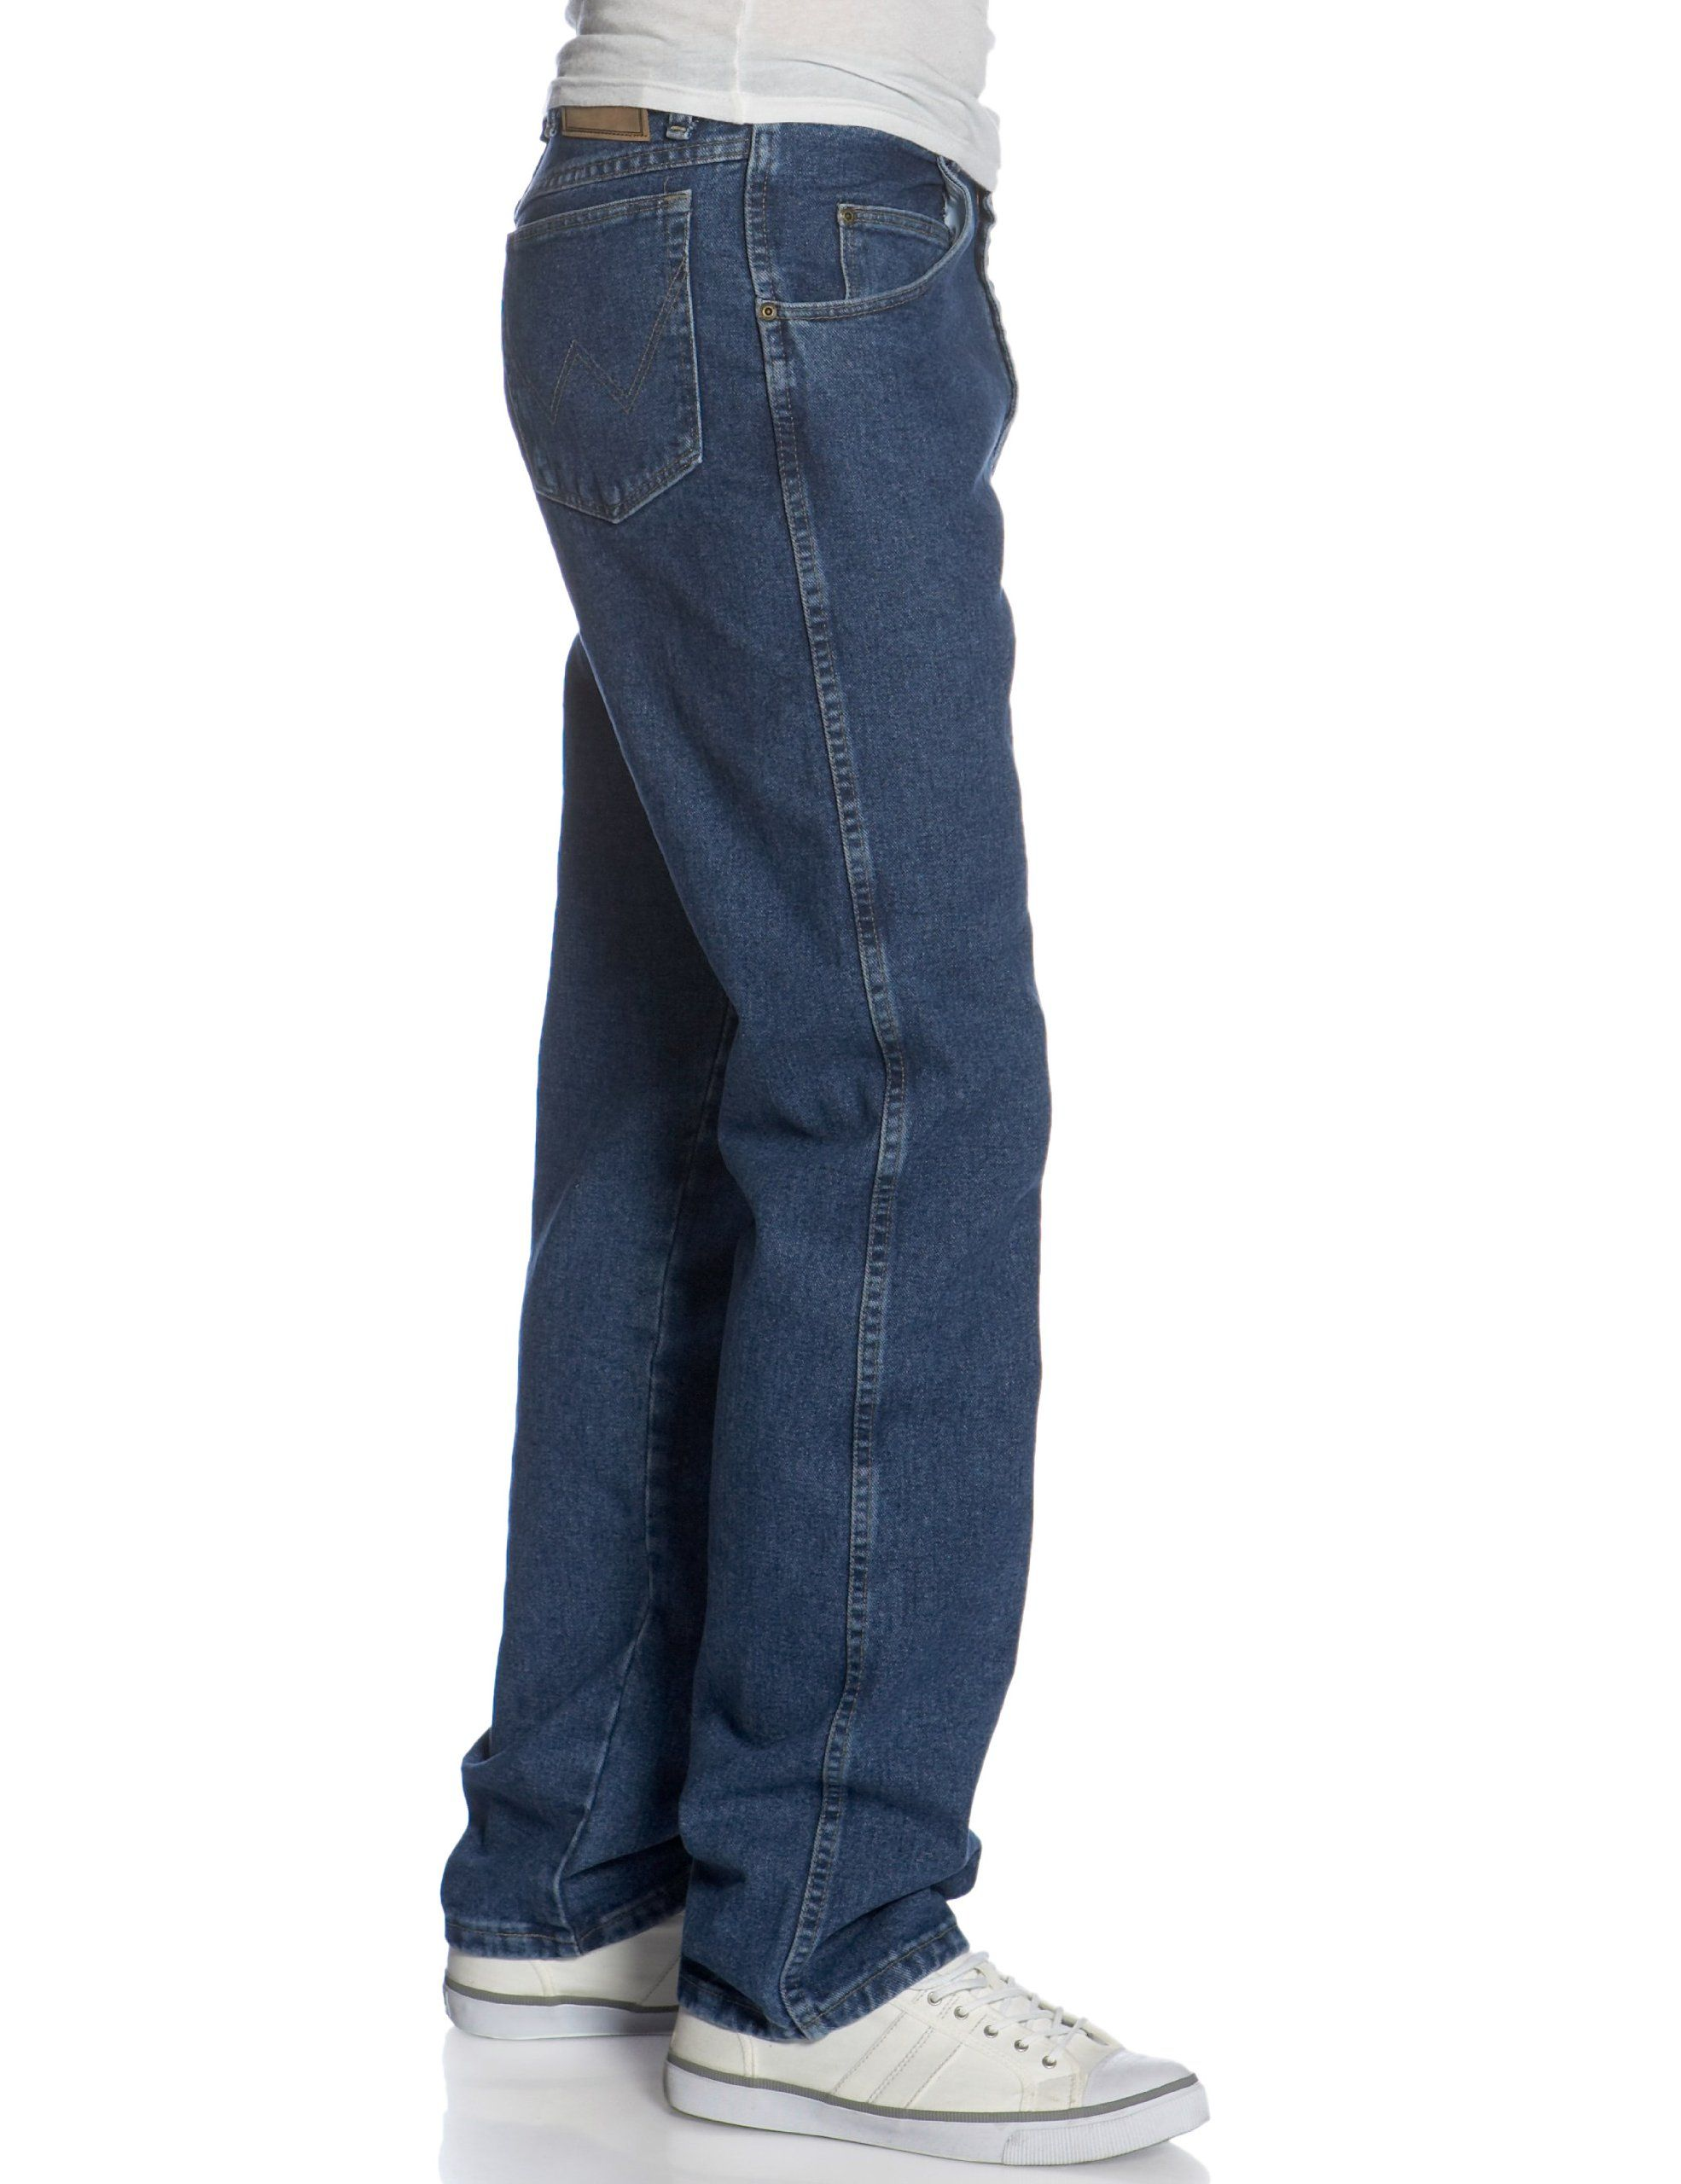 8141d60f Wrangler Men's Big and Tall Rugged Wear Relaxed Fit Jean ,Antique Indigo ,44x32